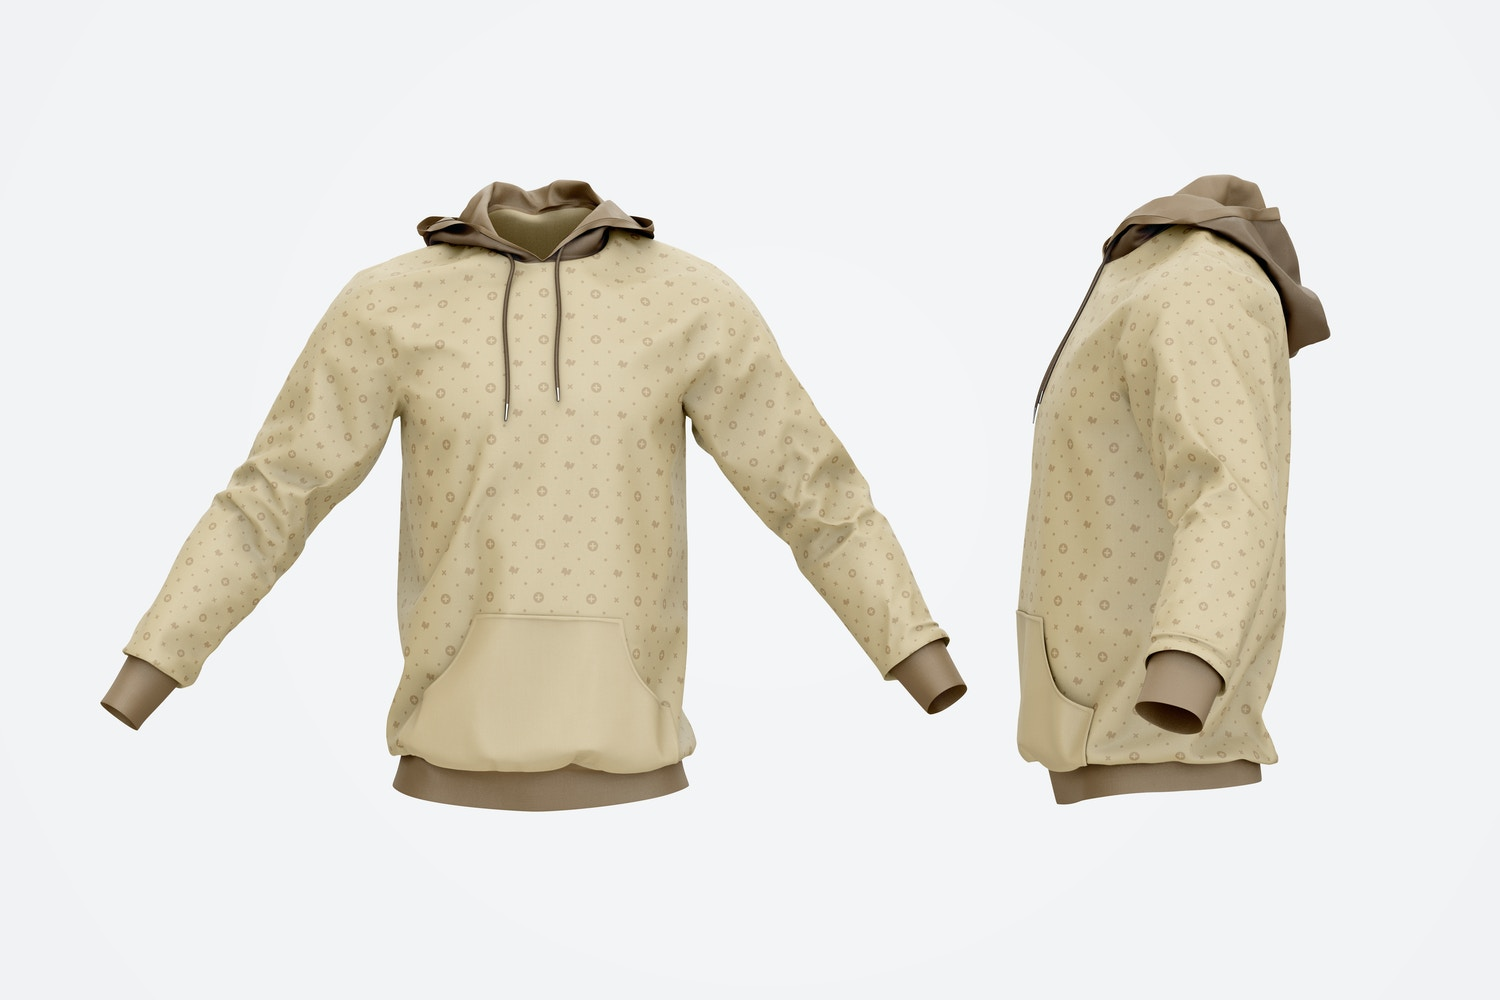 Hoodie Mockup, Front and Side View